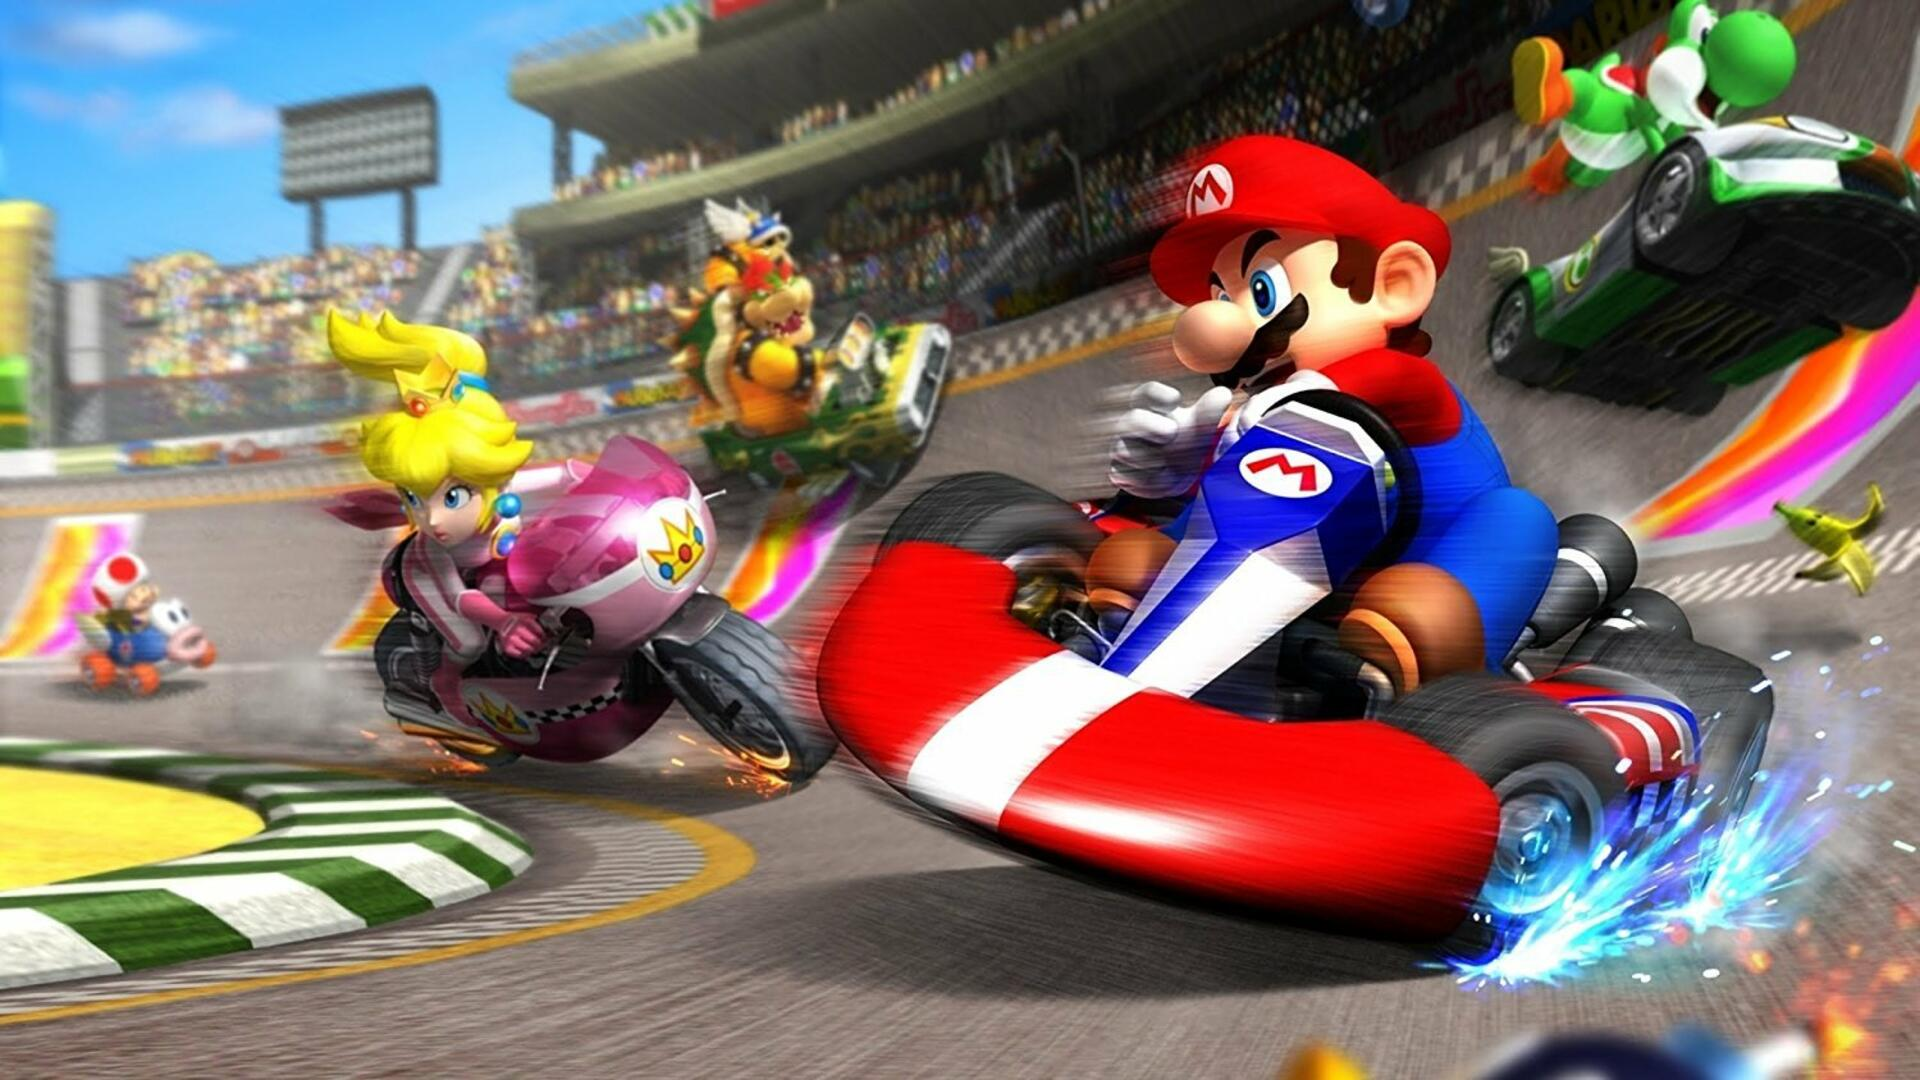 Mario Kart Tour Characters - How to Unlock All Characters